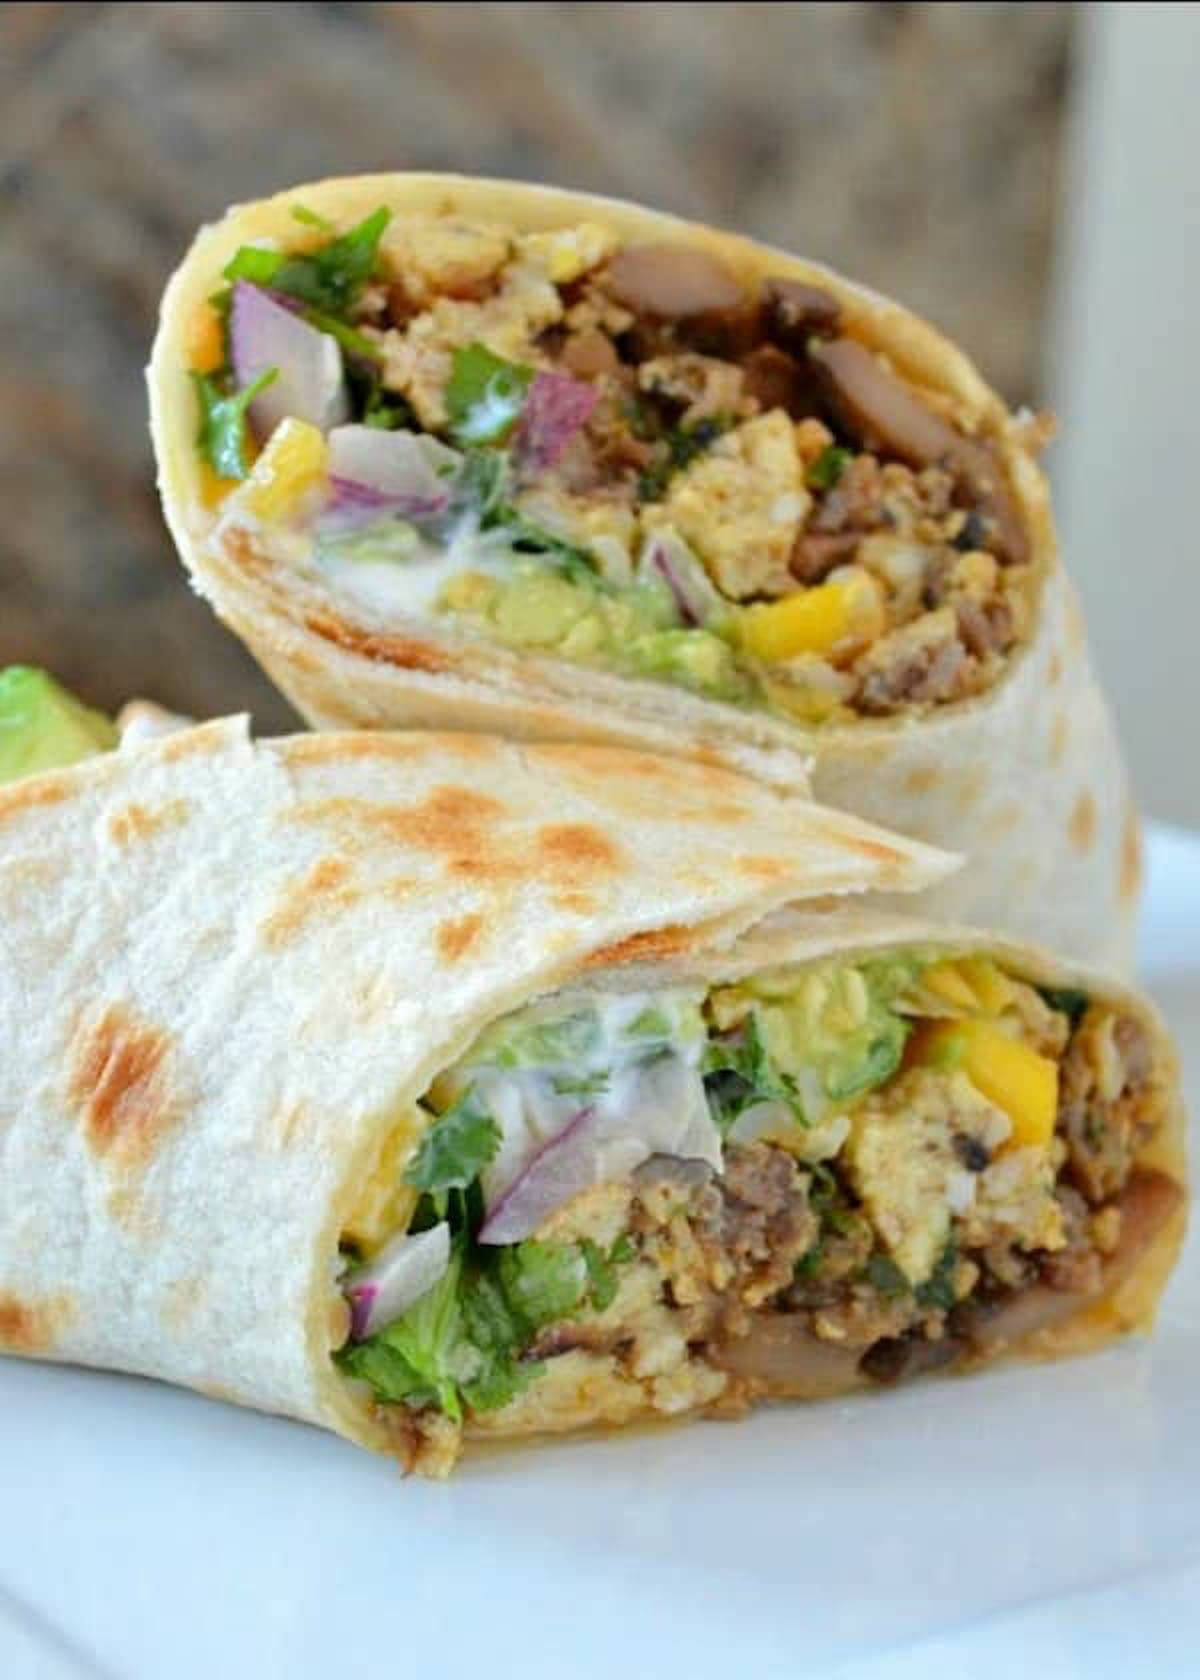 Breakfast Burrito recipe filled with potatoes, sausage or bacon with hidden veggies are a favorite breakfast recipe for on the go.